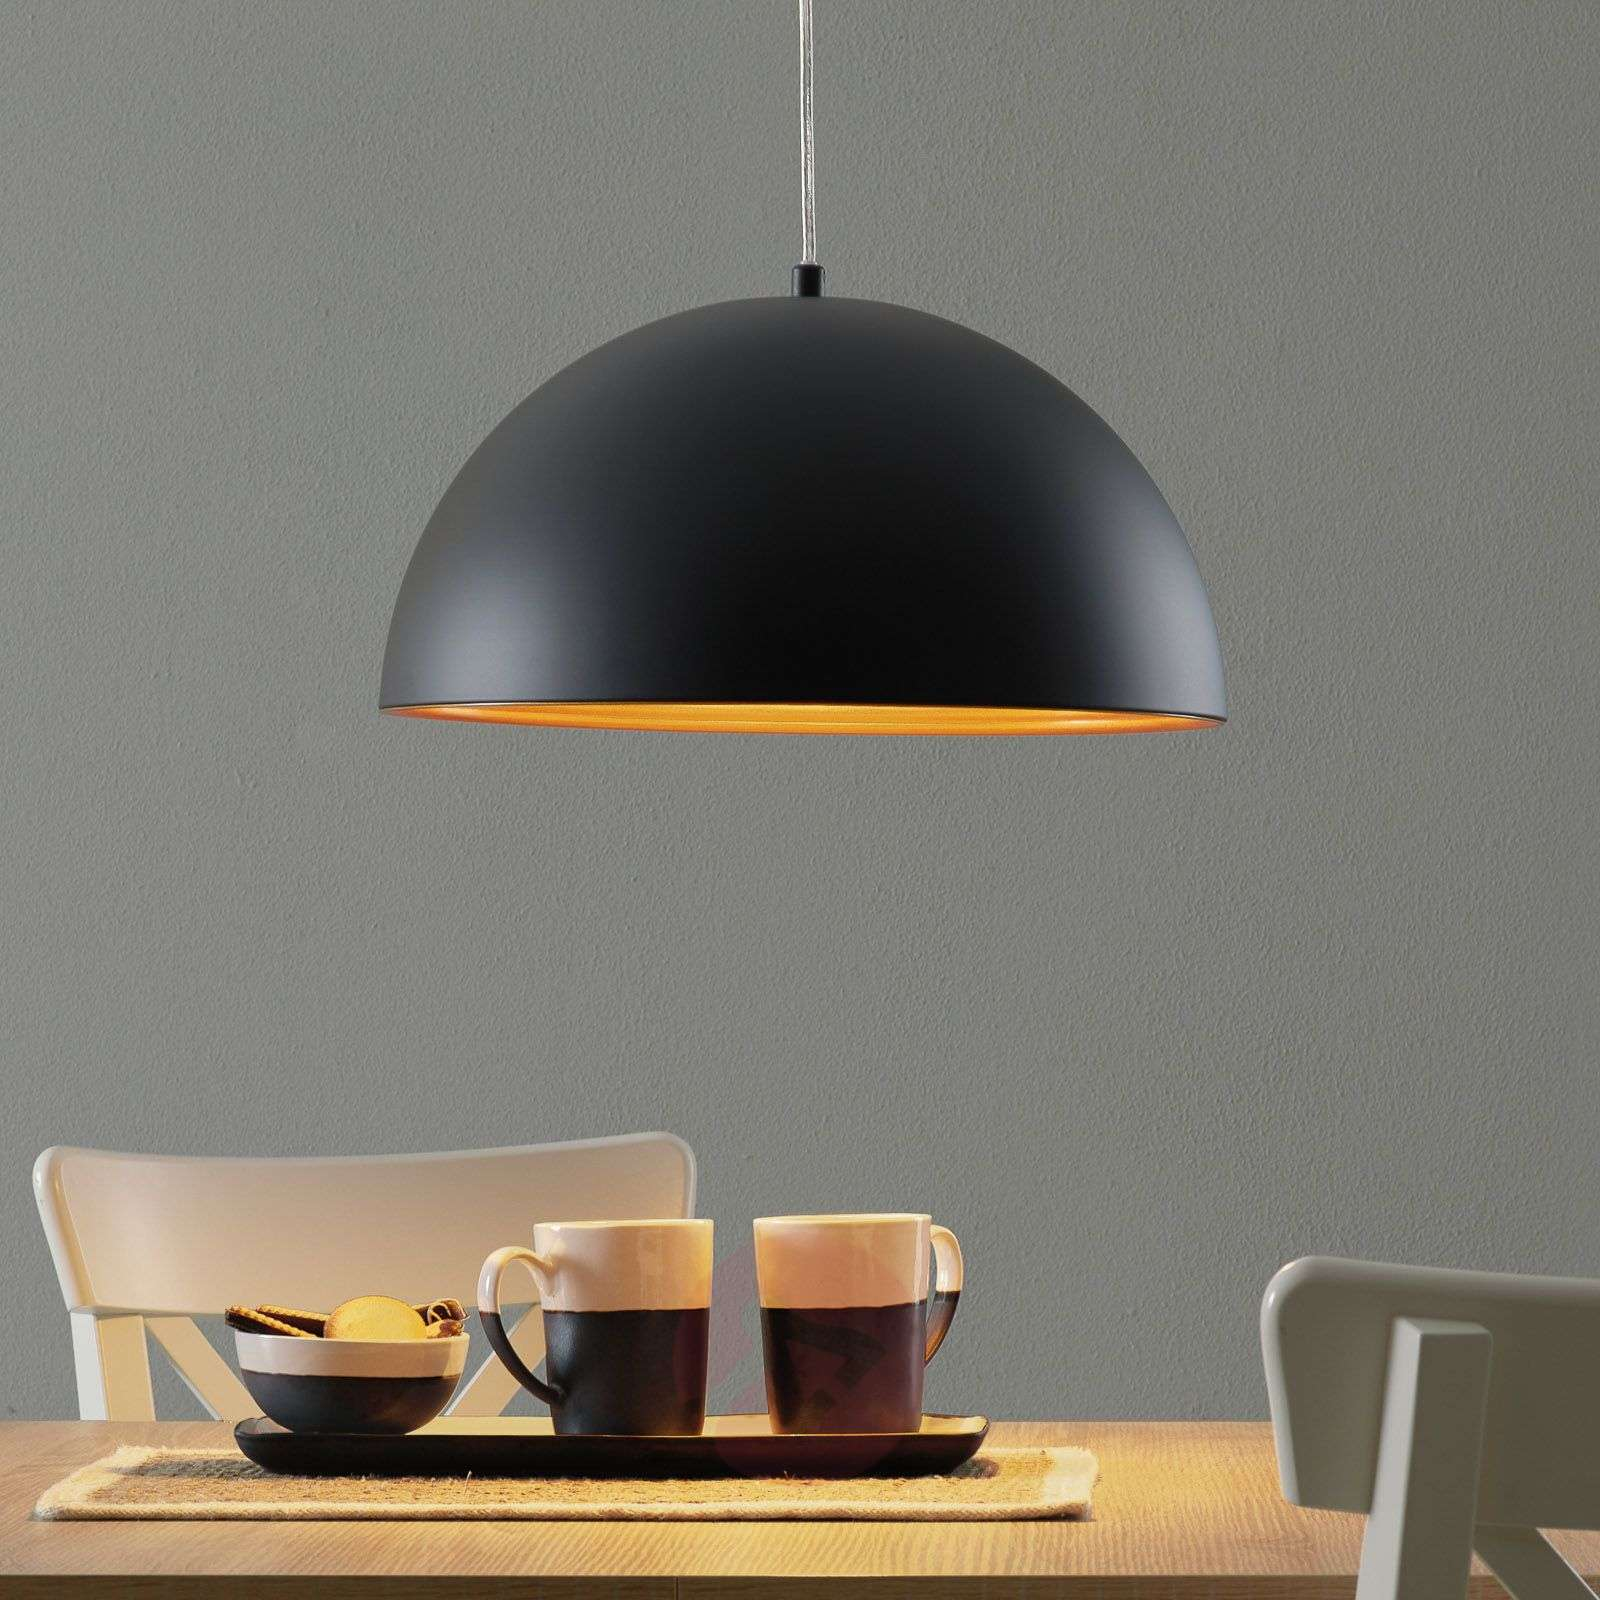 Dingle Two-Tone Hanging Light Black Gold-3502449-01